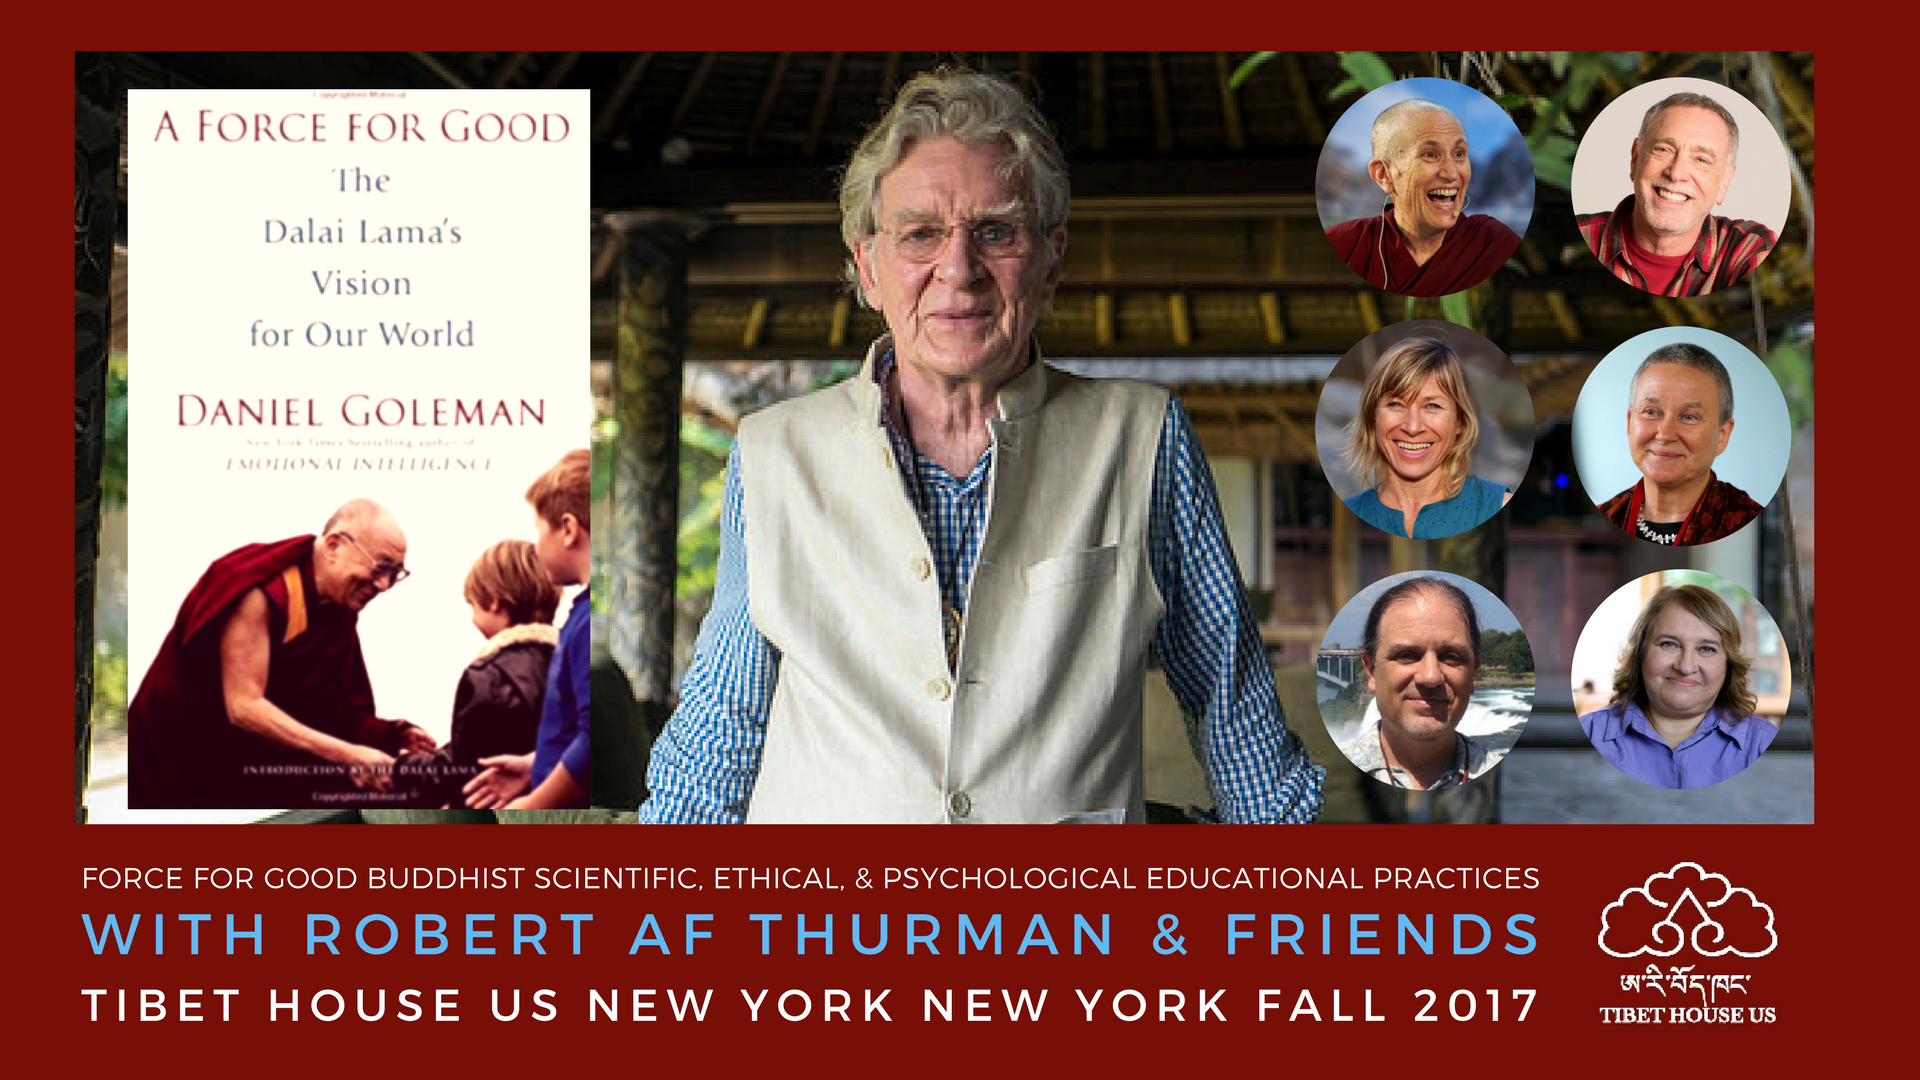 Force For Good Tibet House US Menla Series with Krishna Das, Robert Thurman & Sharon Salzberg